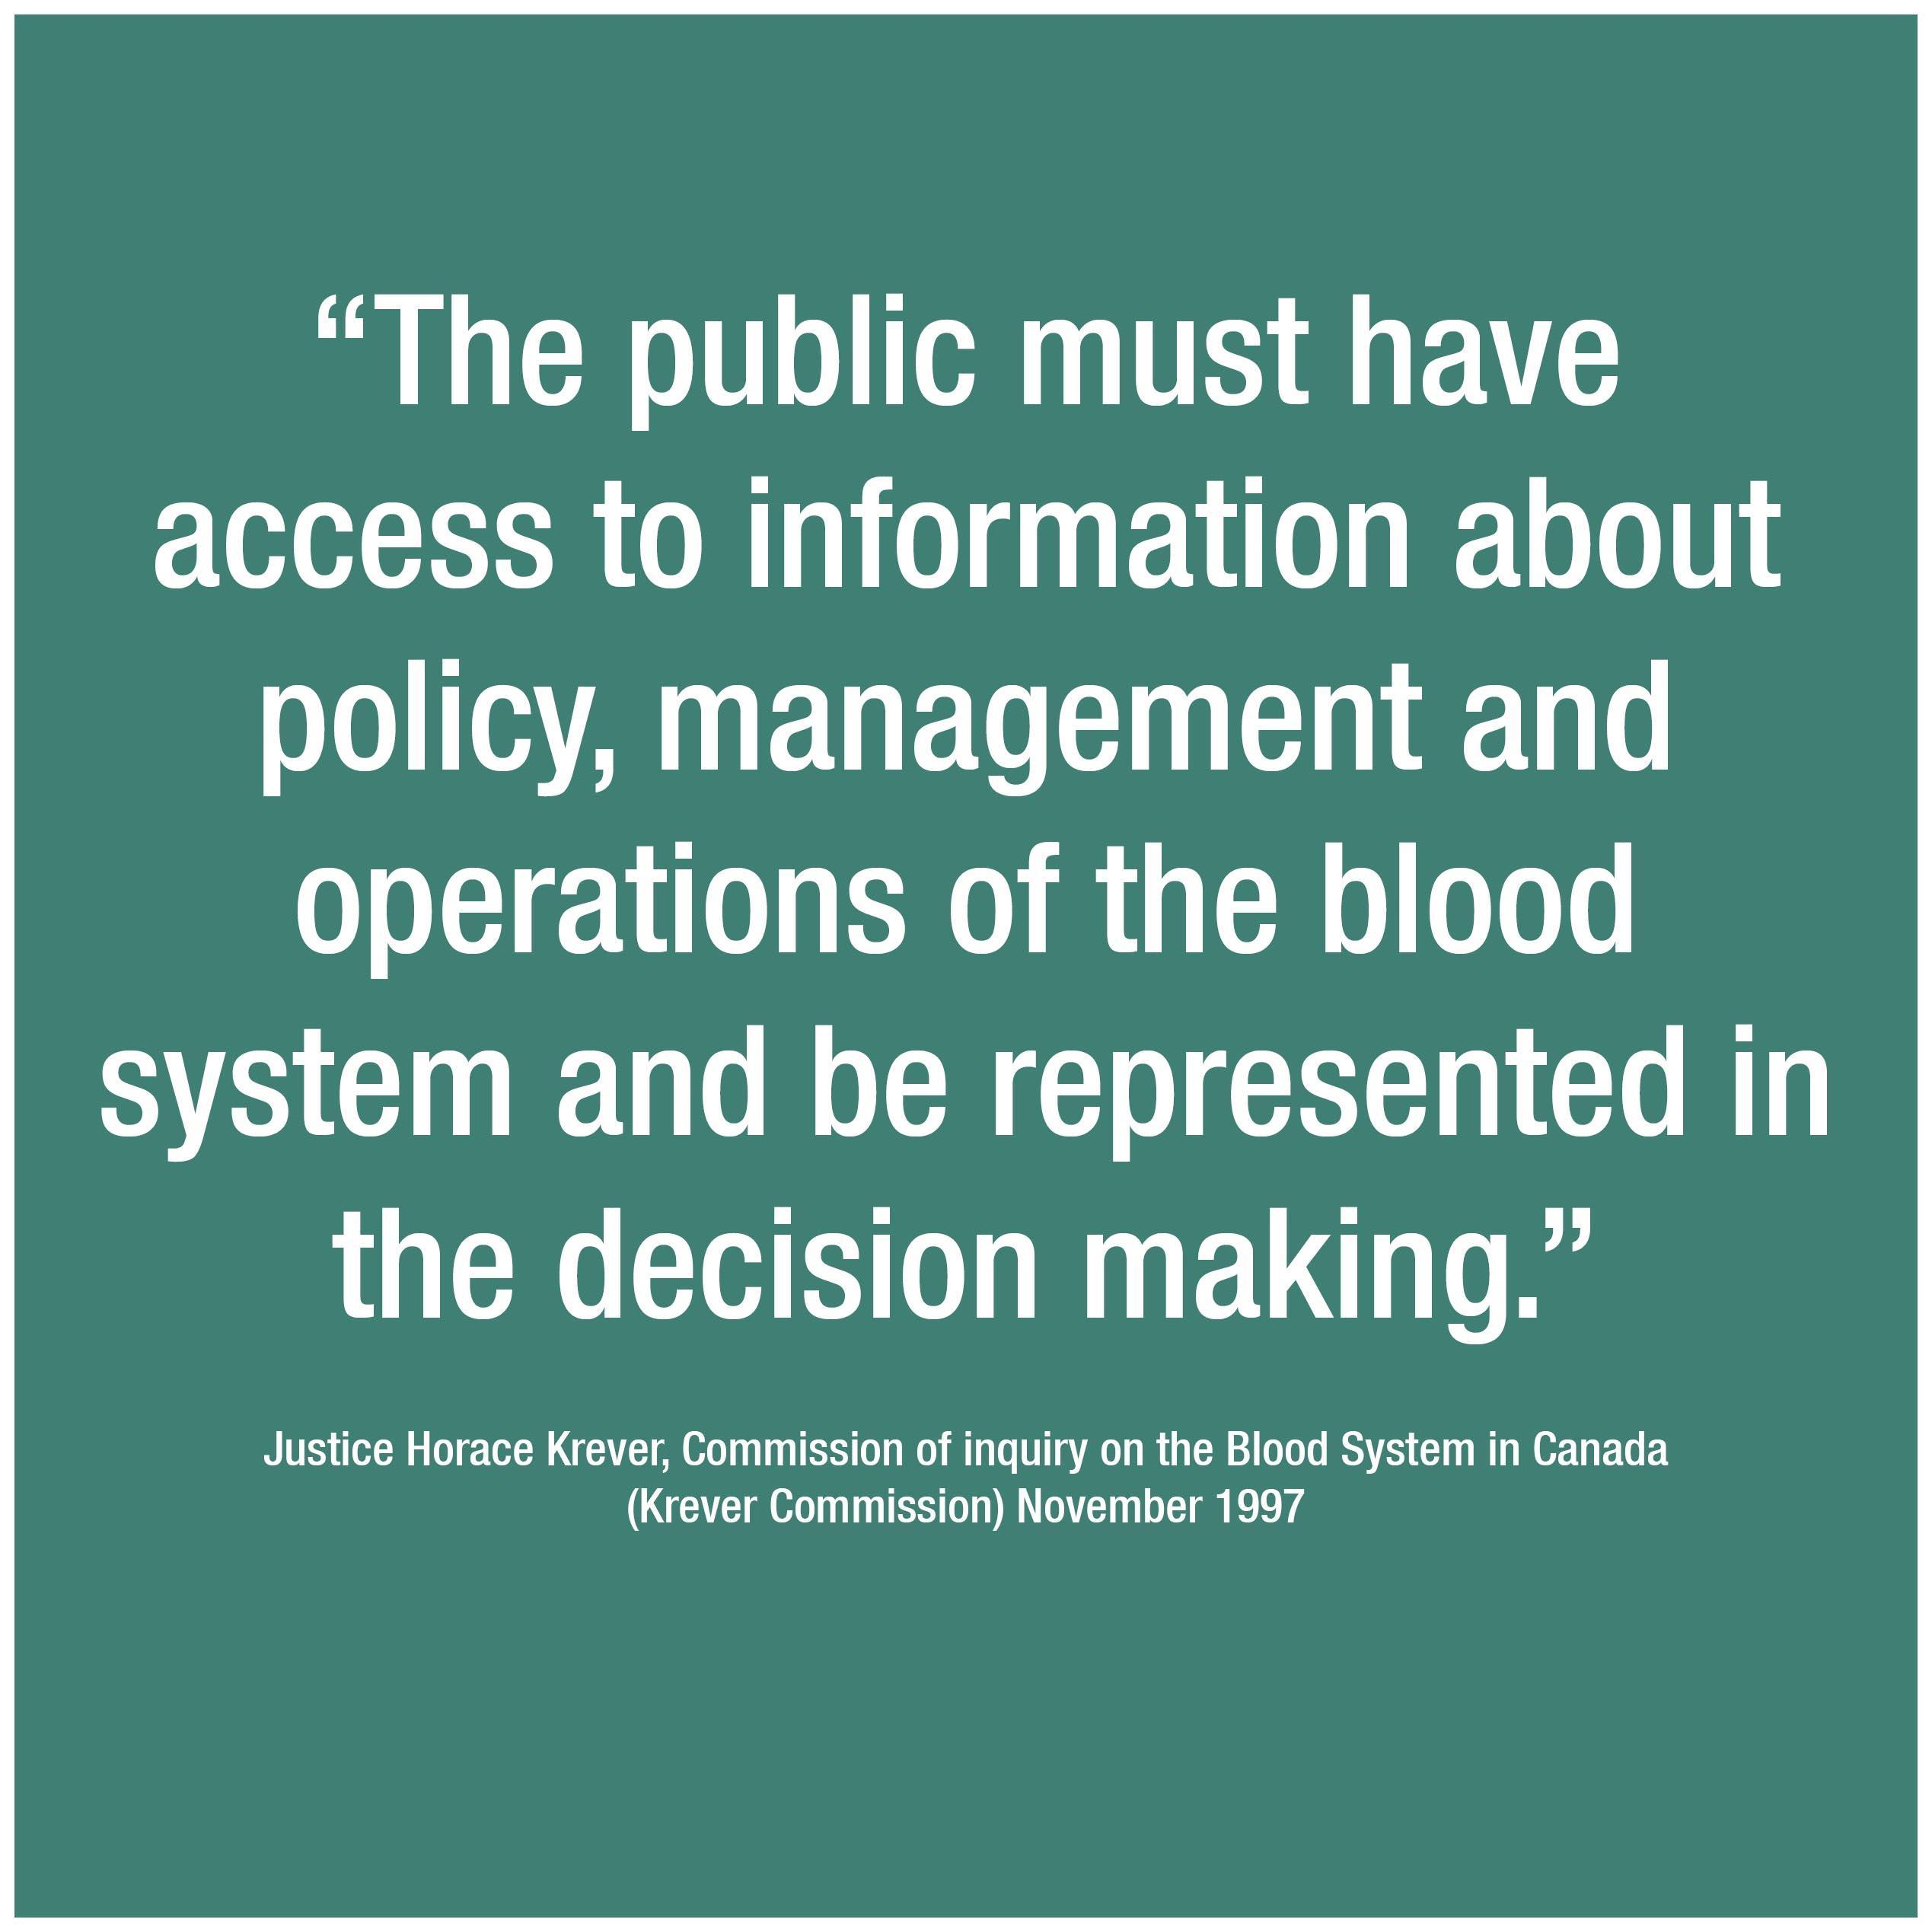 Committed to public involvement